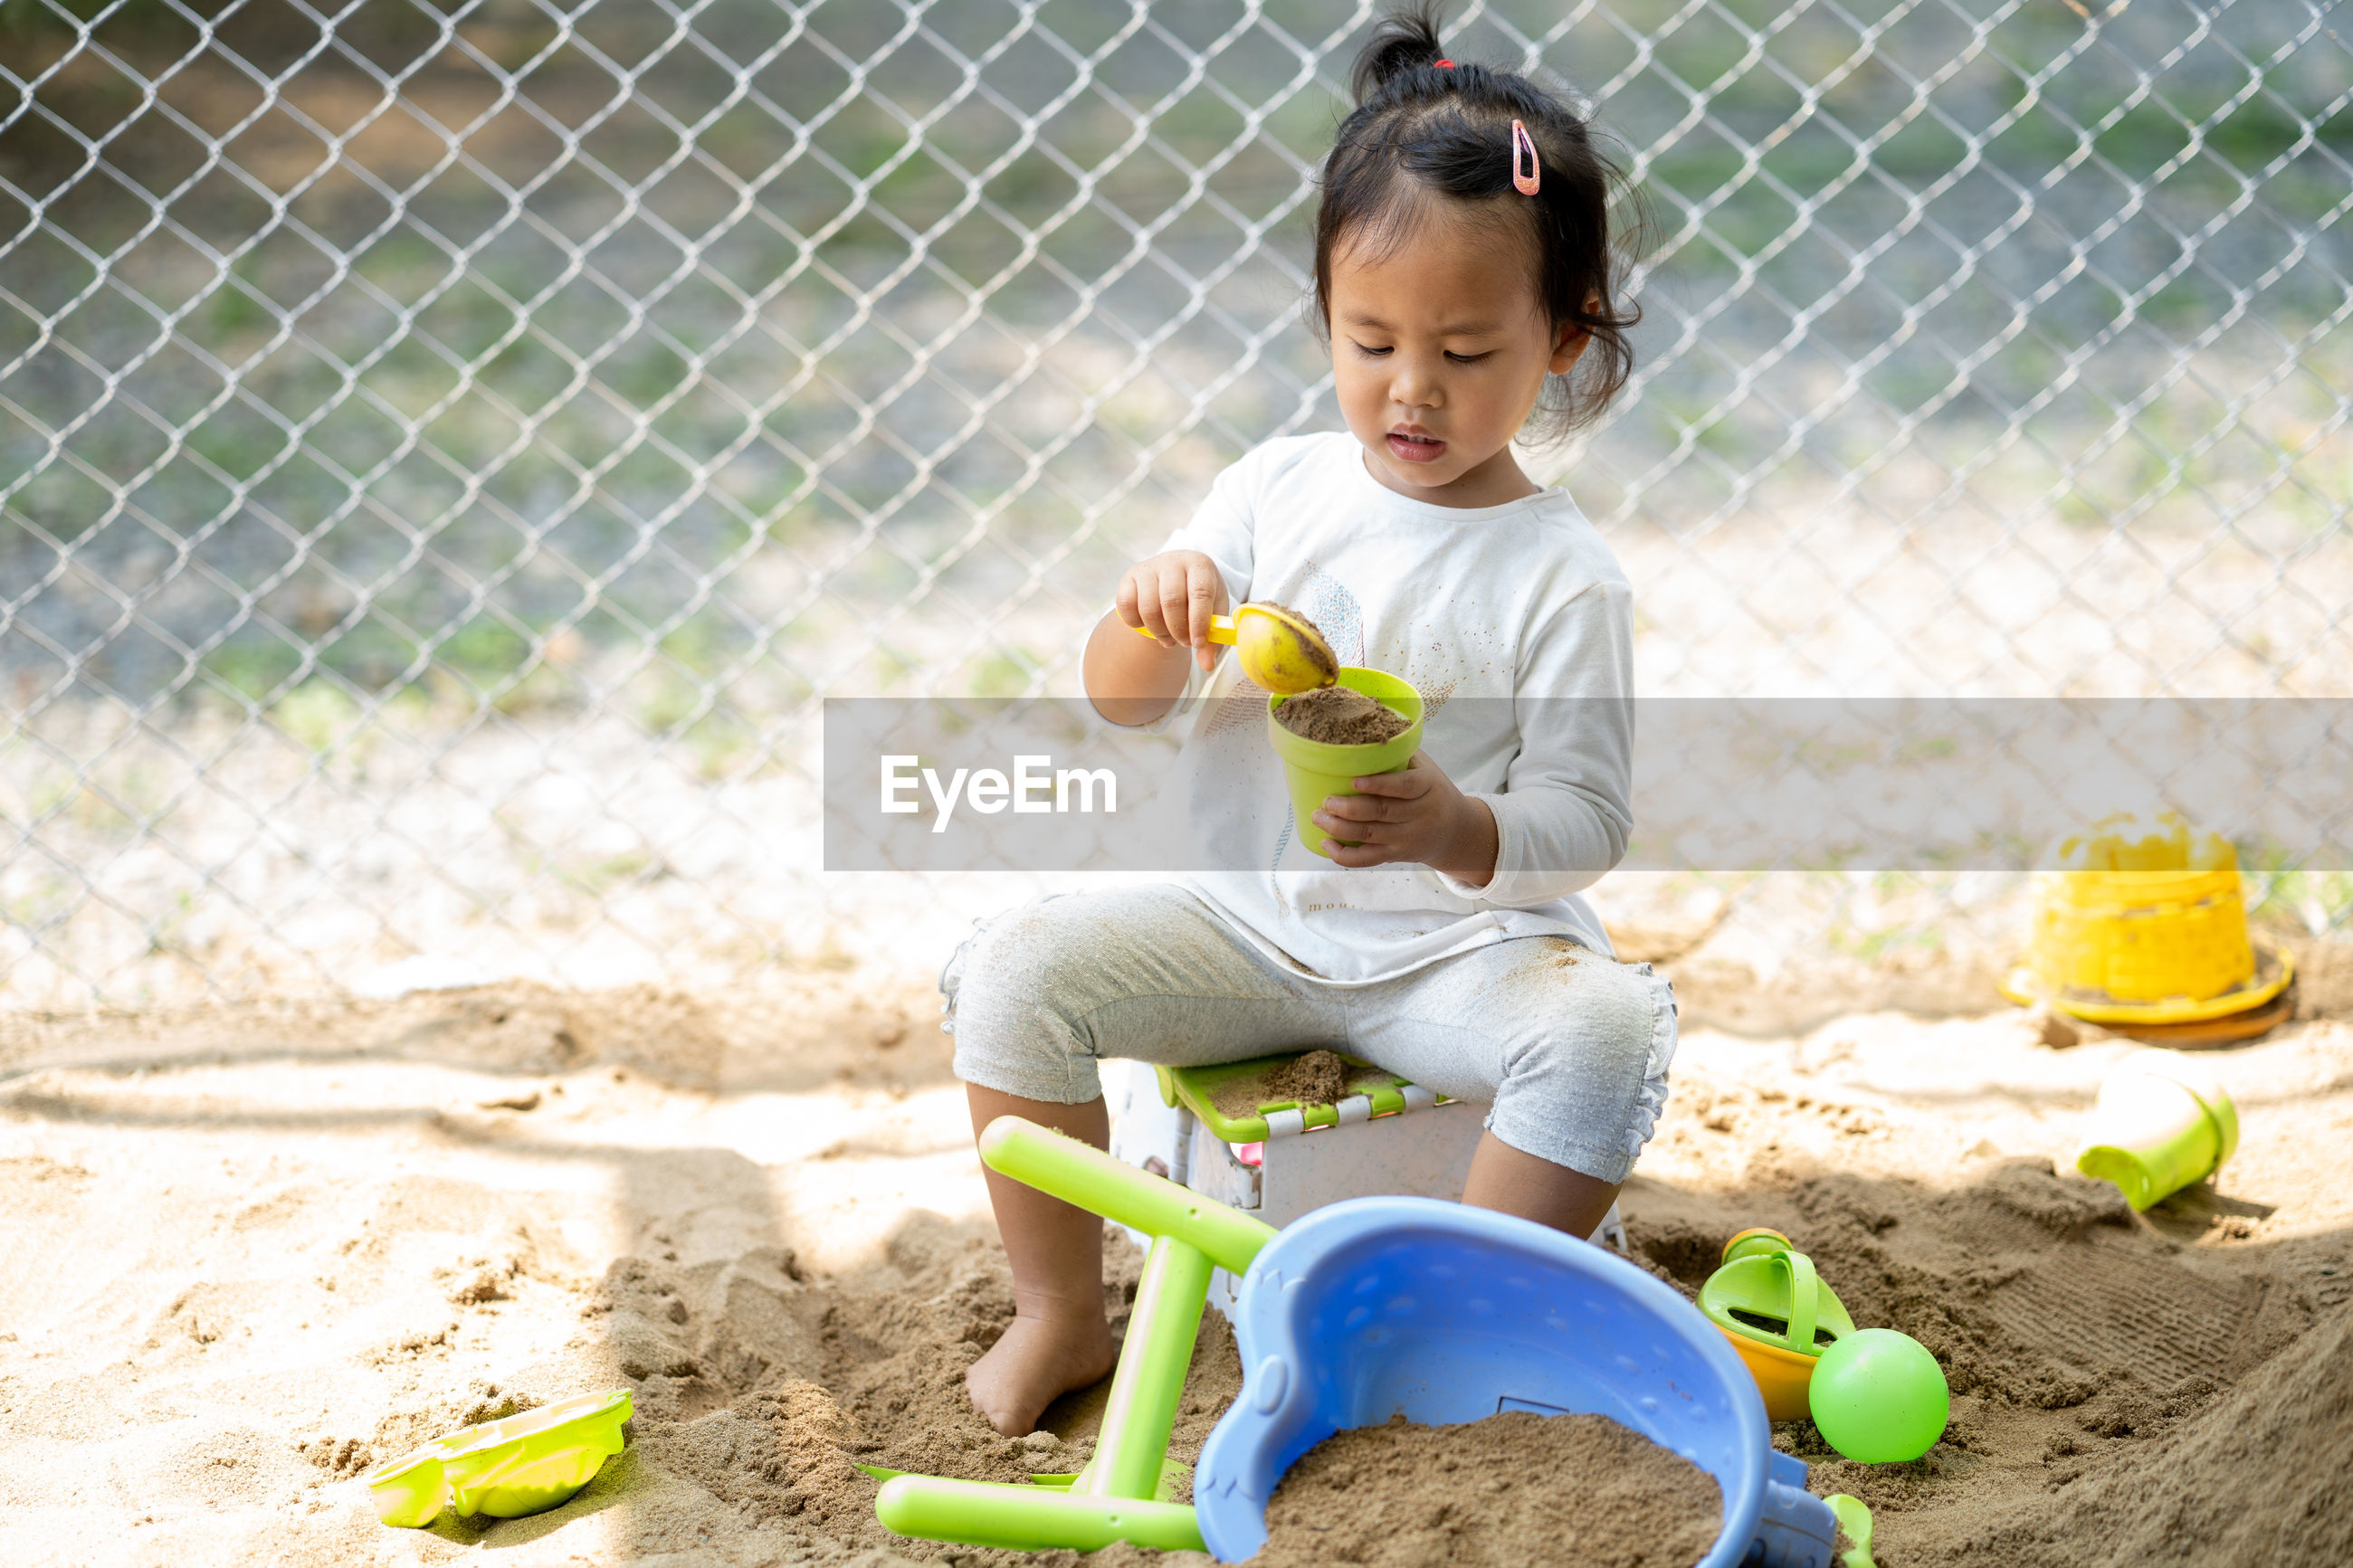 Cute girl playing with toys while sitting outdoors